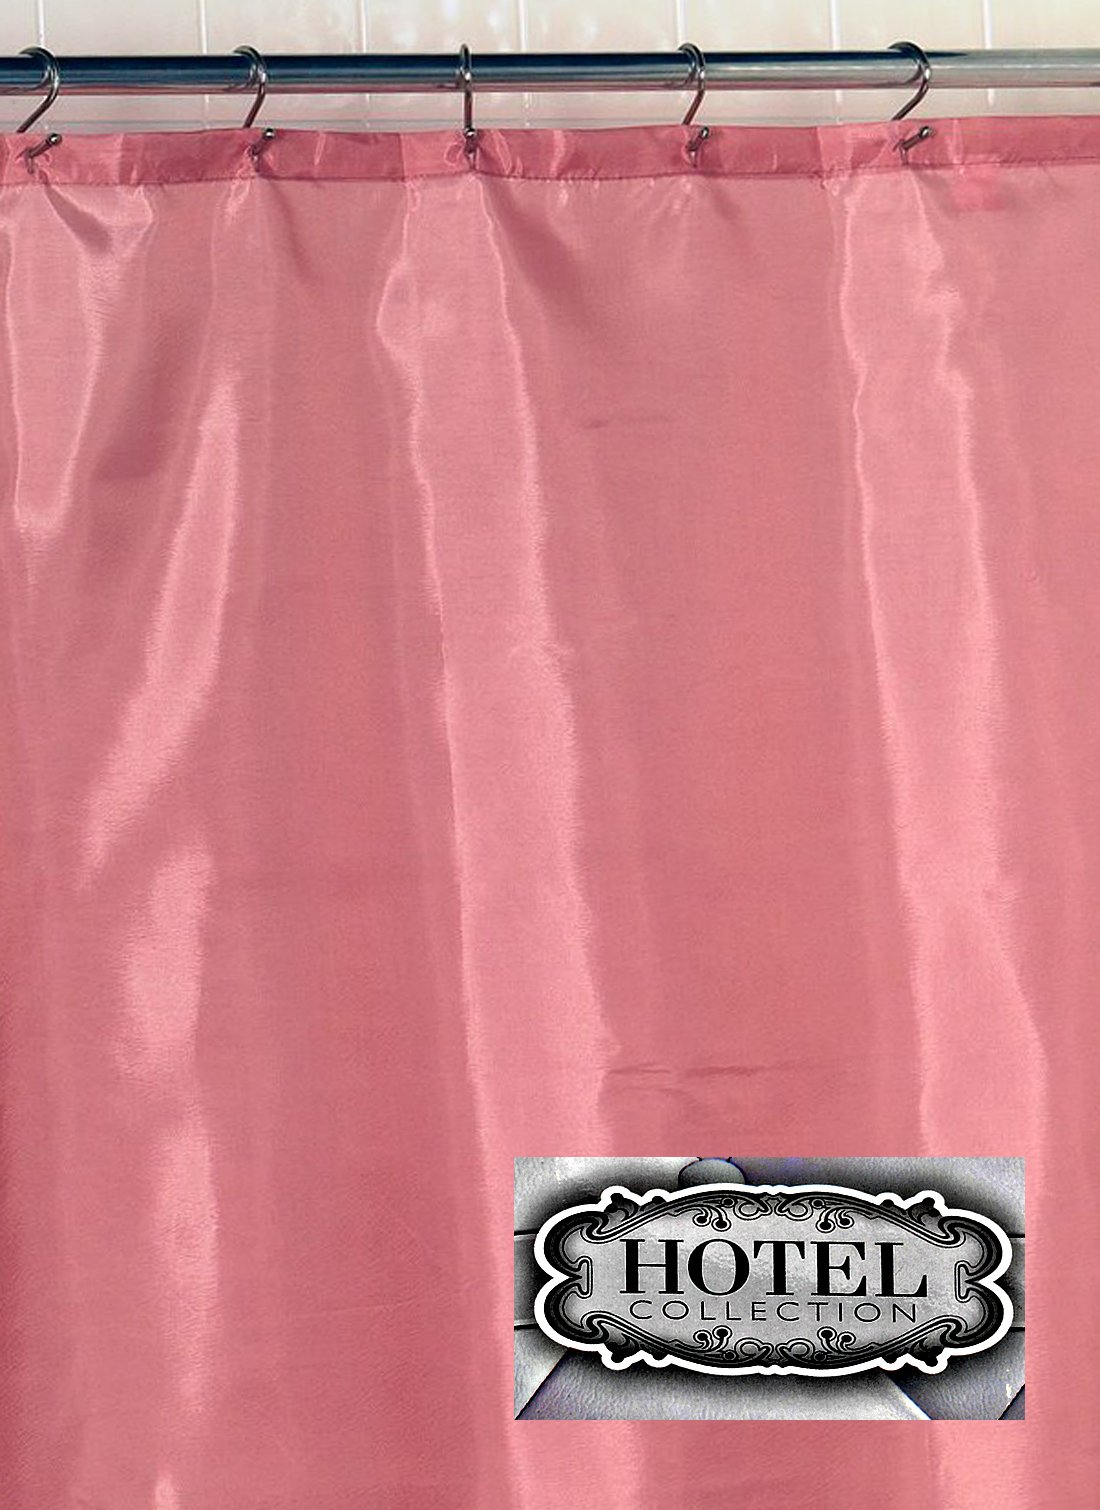 Hotel Fabric Shower Curtain Liner 70'' wide x 72'' long, Rose